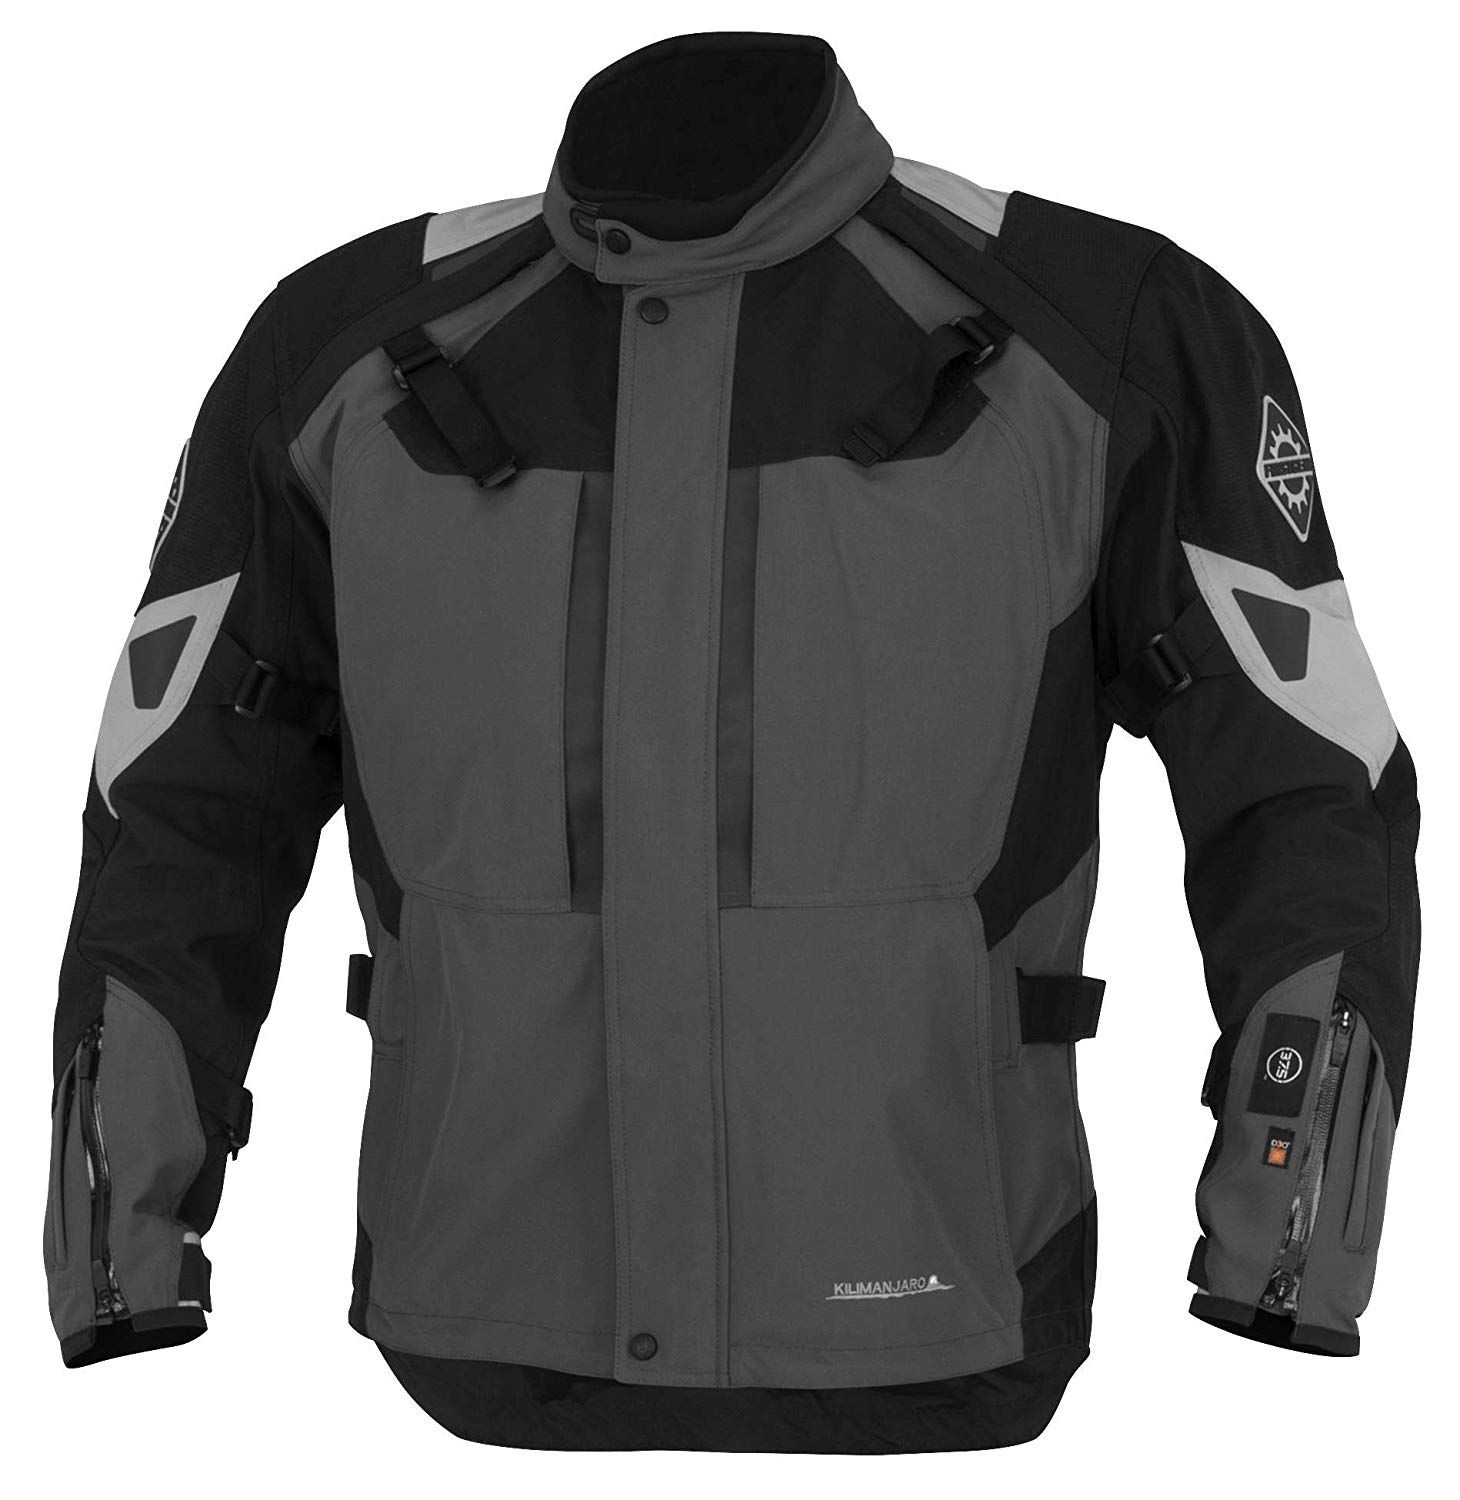 motocycle jackets